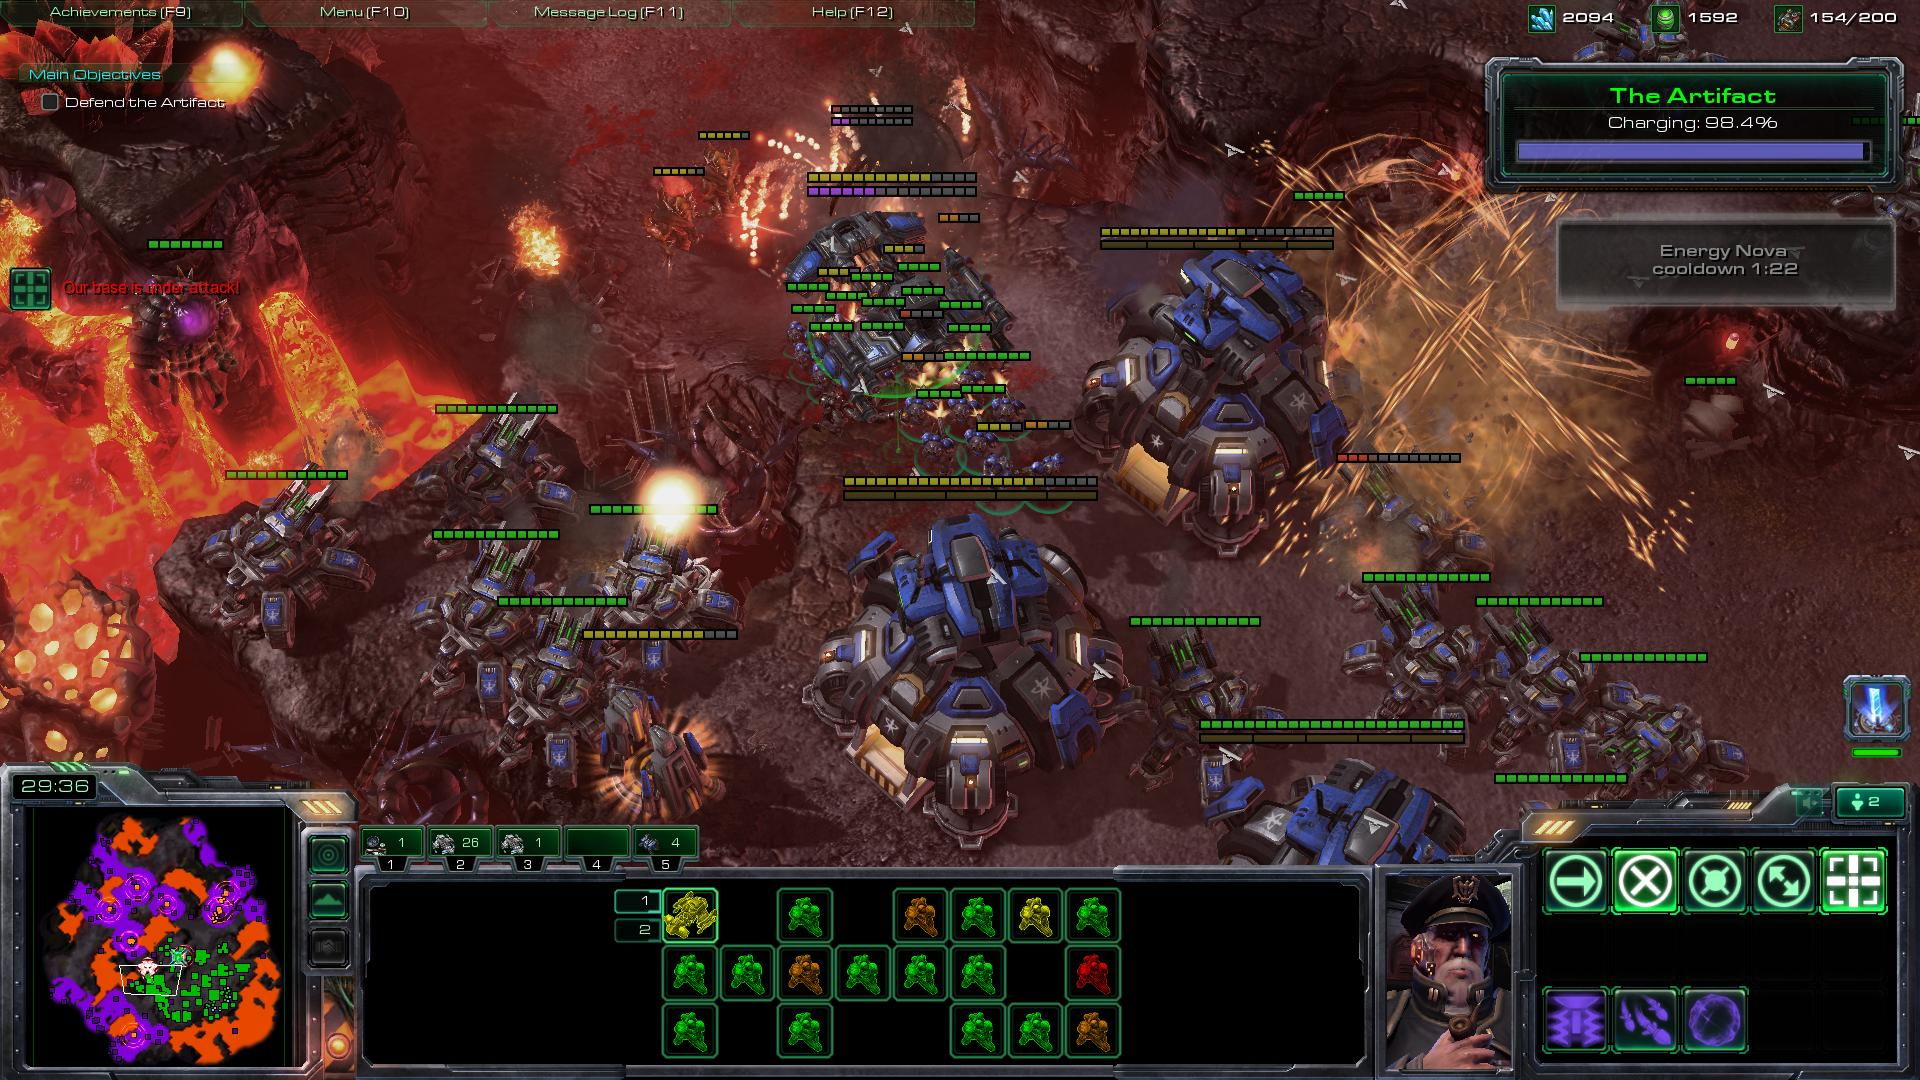 all in starcraft 2 sc2 screenshot. Black Bedroom Furniture Sets. Home Design Ideas